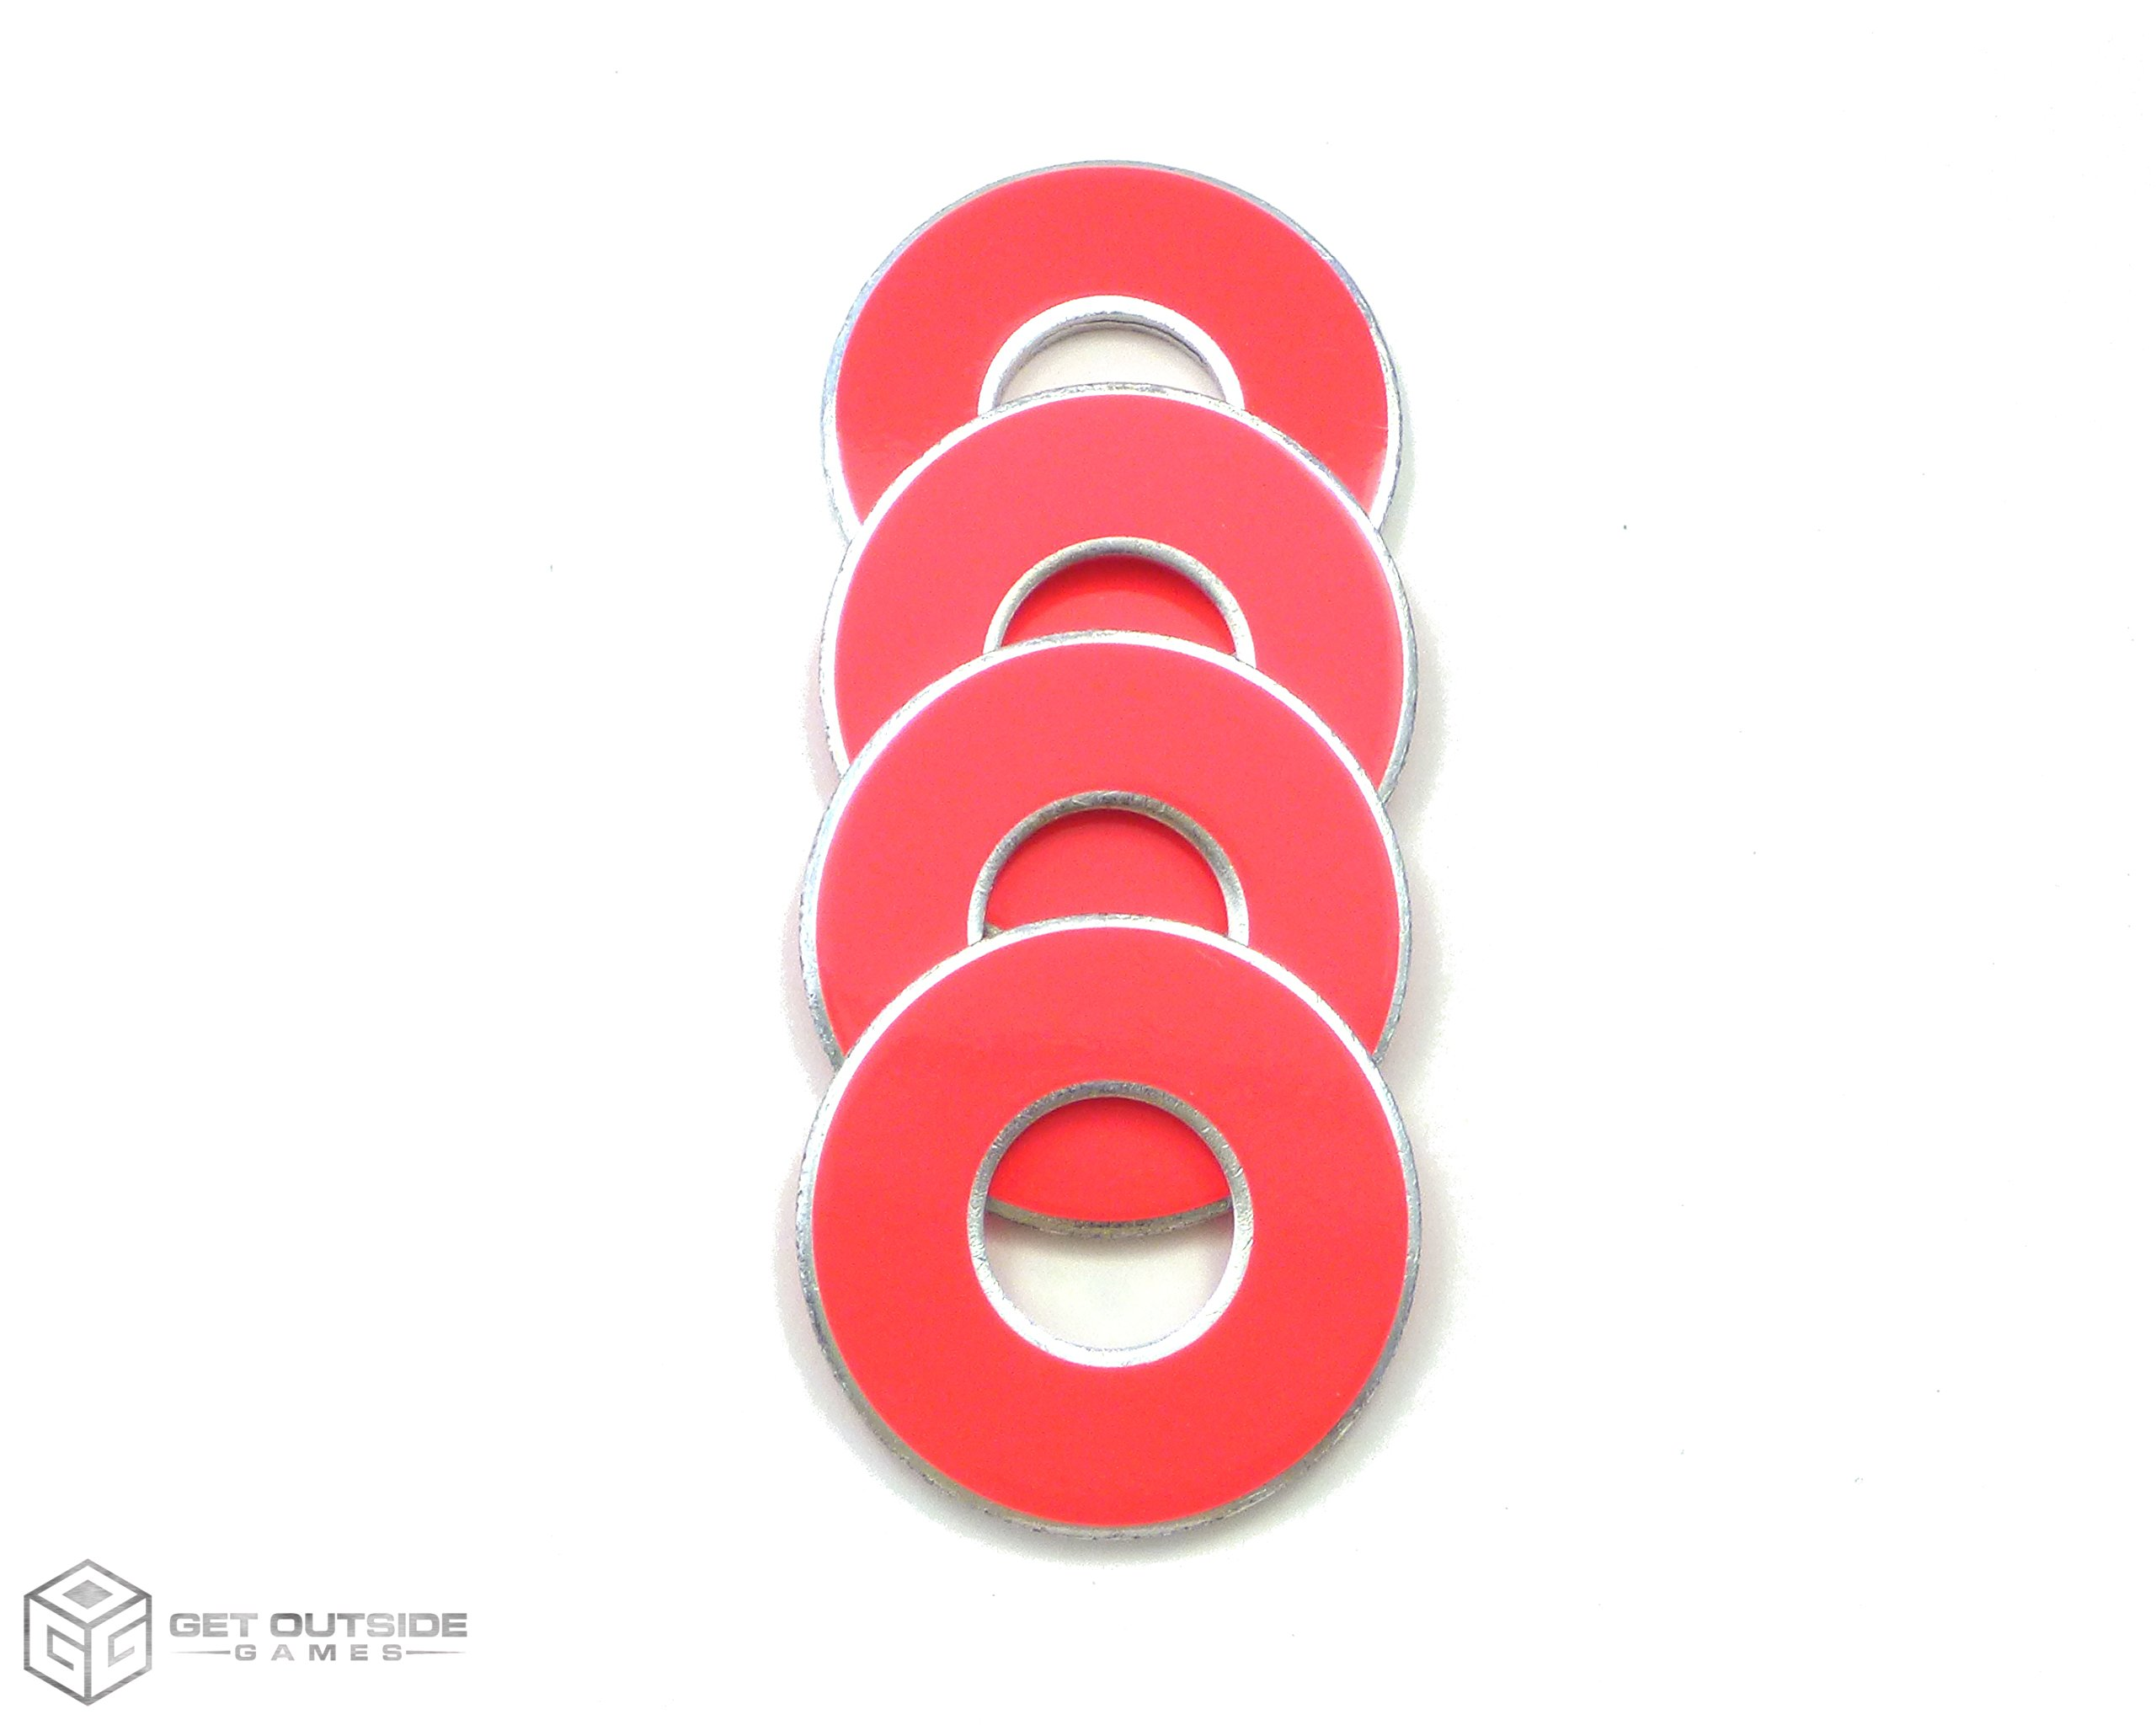 Get Outside Games 4 Neon Fluorescent VVashers - Washer Toss/Washer Game Washers - 5 Colors (Pink, 4 VVashers with Container) by Get Outside Games